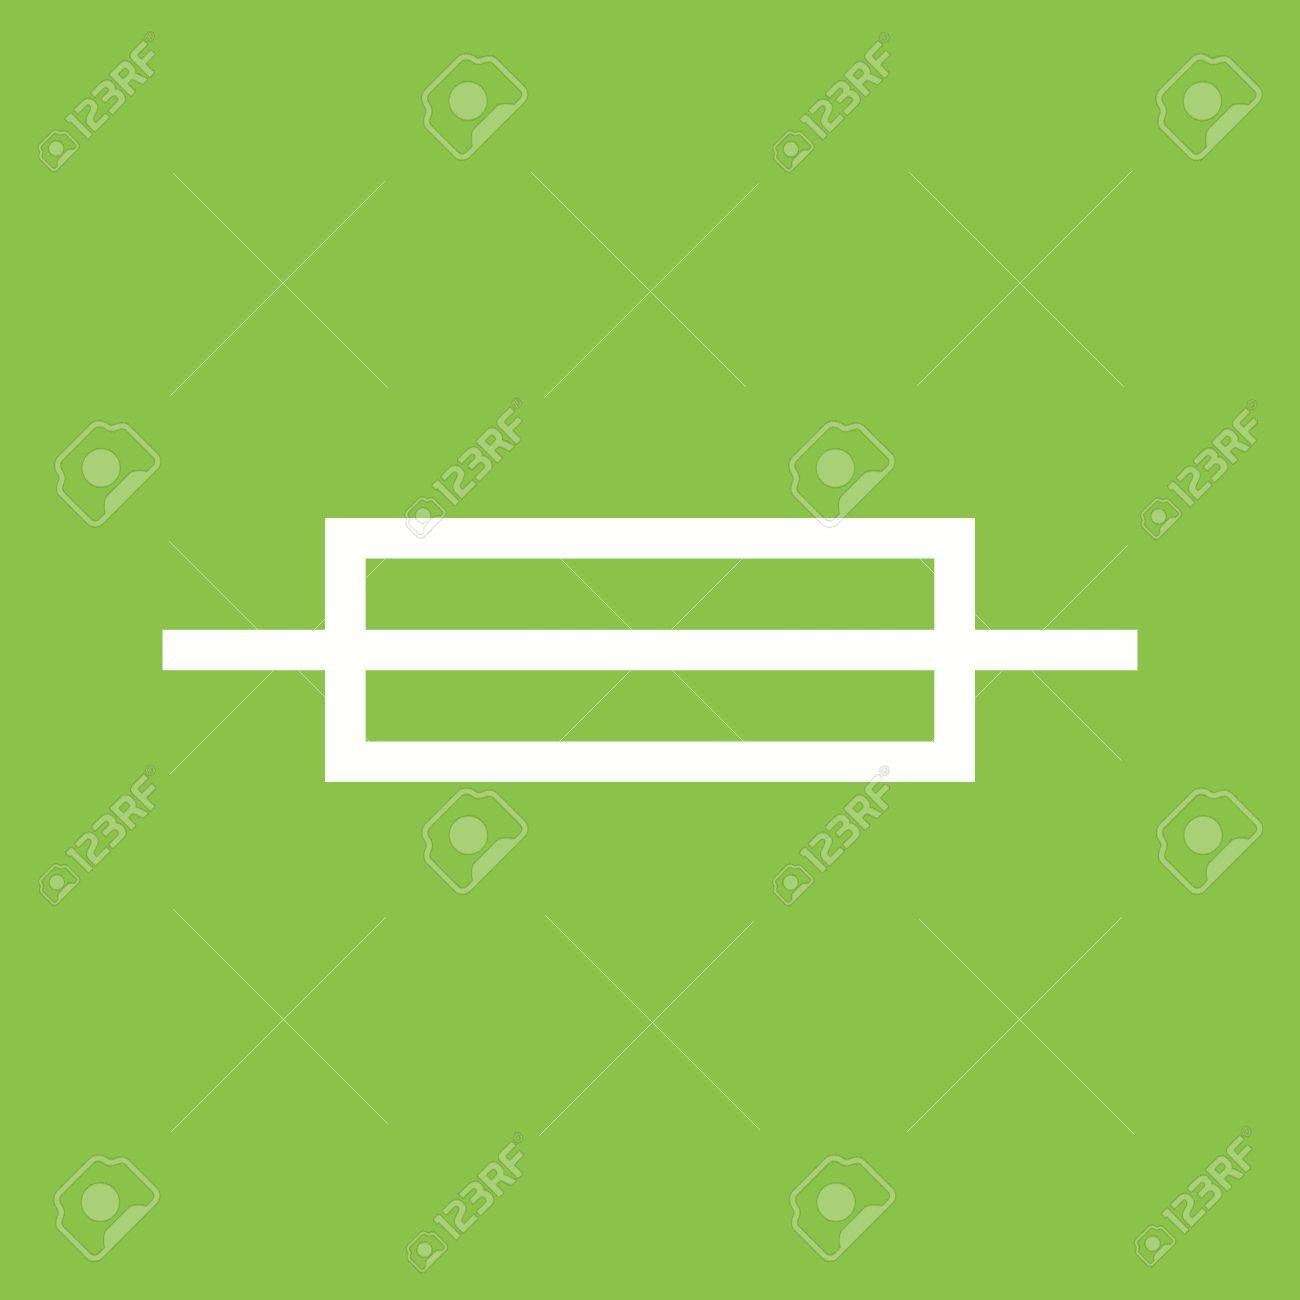 fuse box electric icon vector image can also be used for fuse box electric icon vector image can also be used for electric circuits